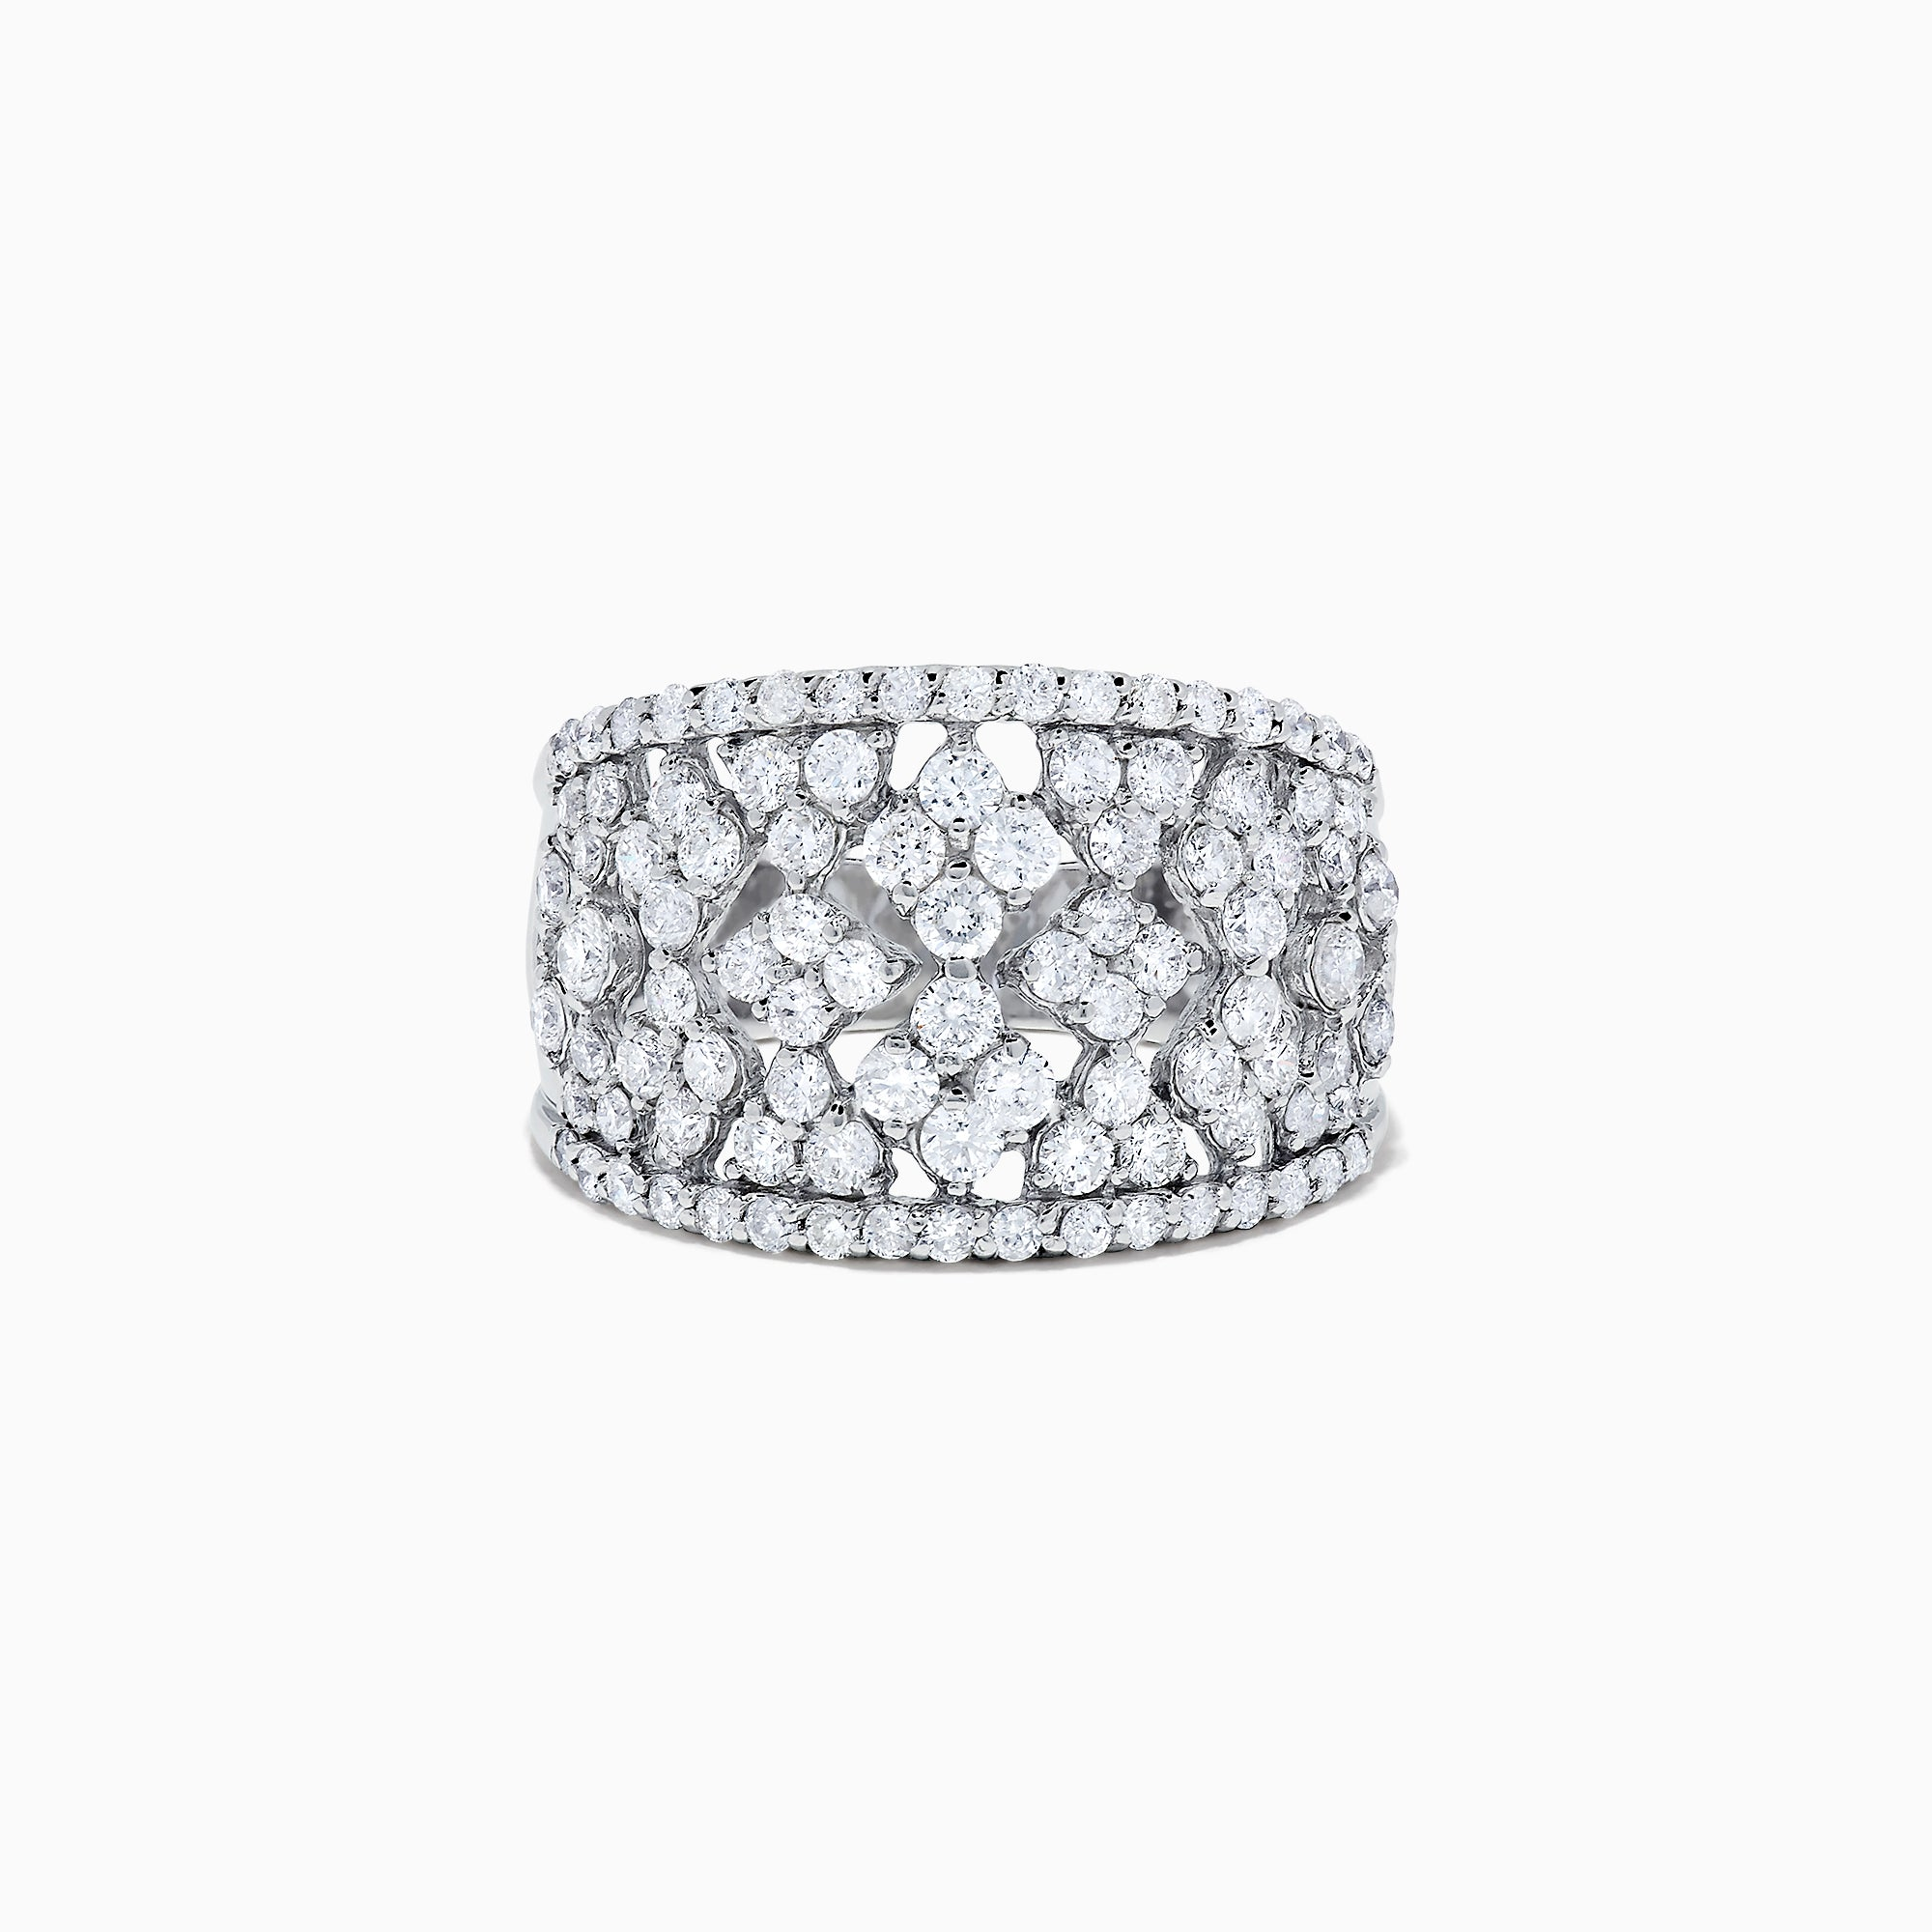 Effy 14K White Gold Diamond Ring, 2.10 TCW